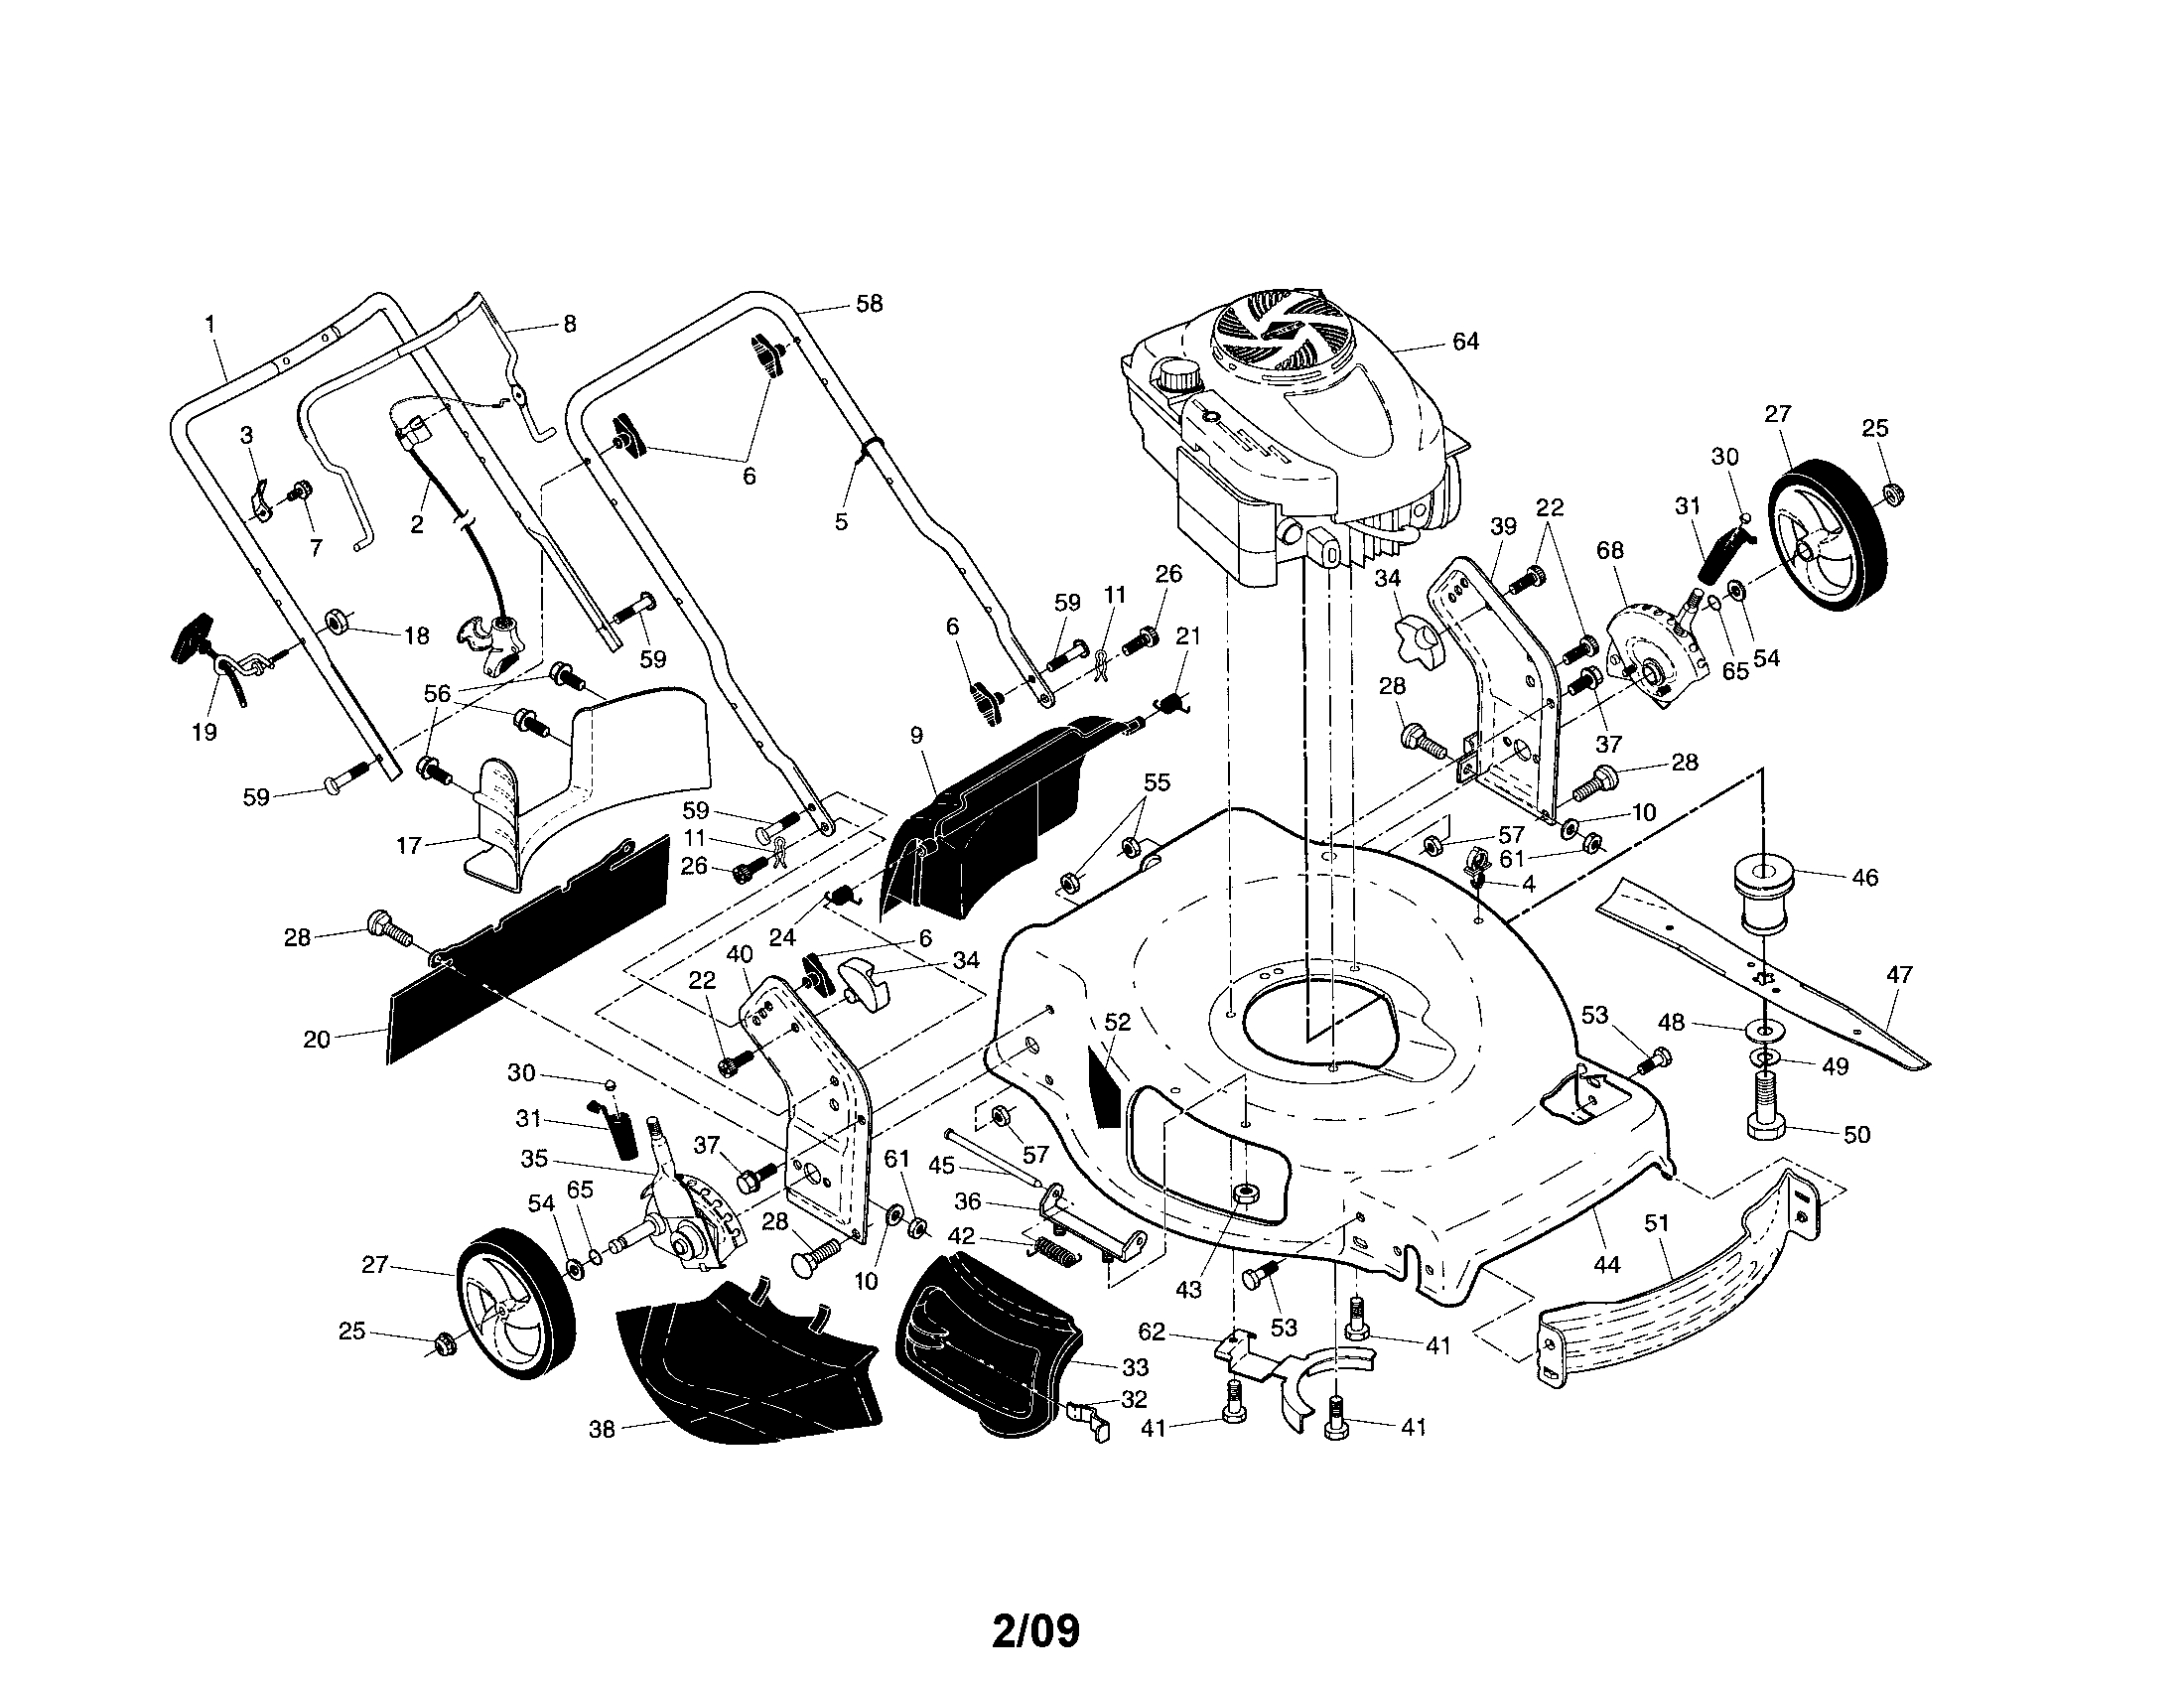 Craftsman Lawn Mower Engine Parts Diagram Craftsman Diy